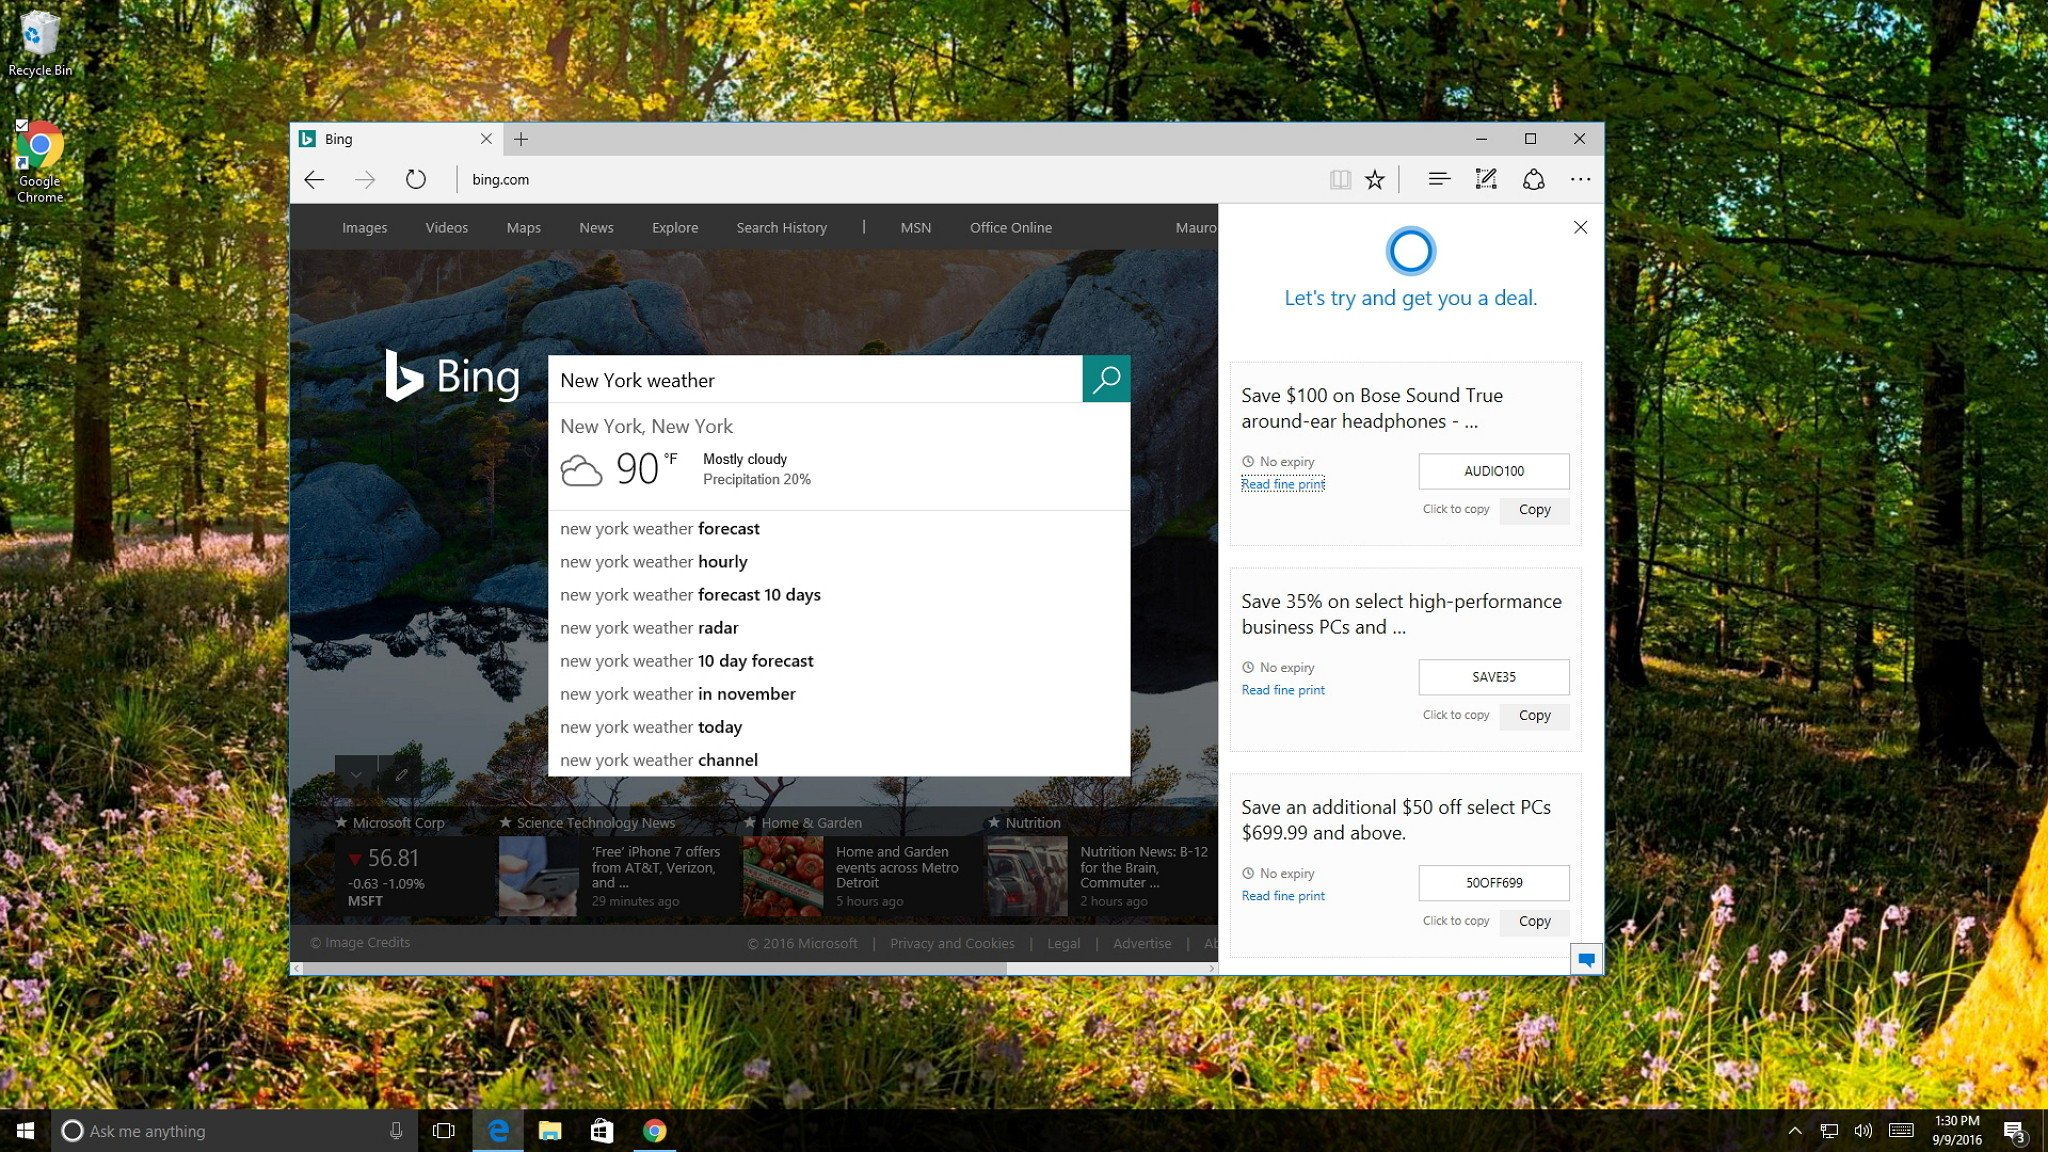 How To Allow & Block Website Cookies In Microsoft Edge Cortana Is One Of  The Biggest Features On Windows 10 The Digital Assistant Can Quickly Help